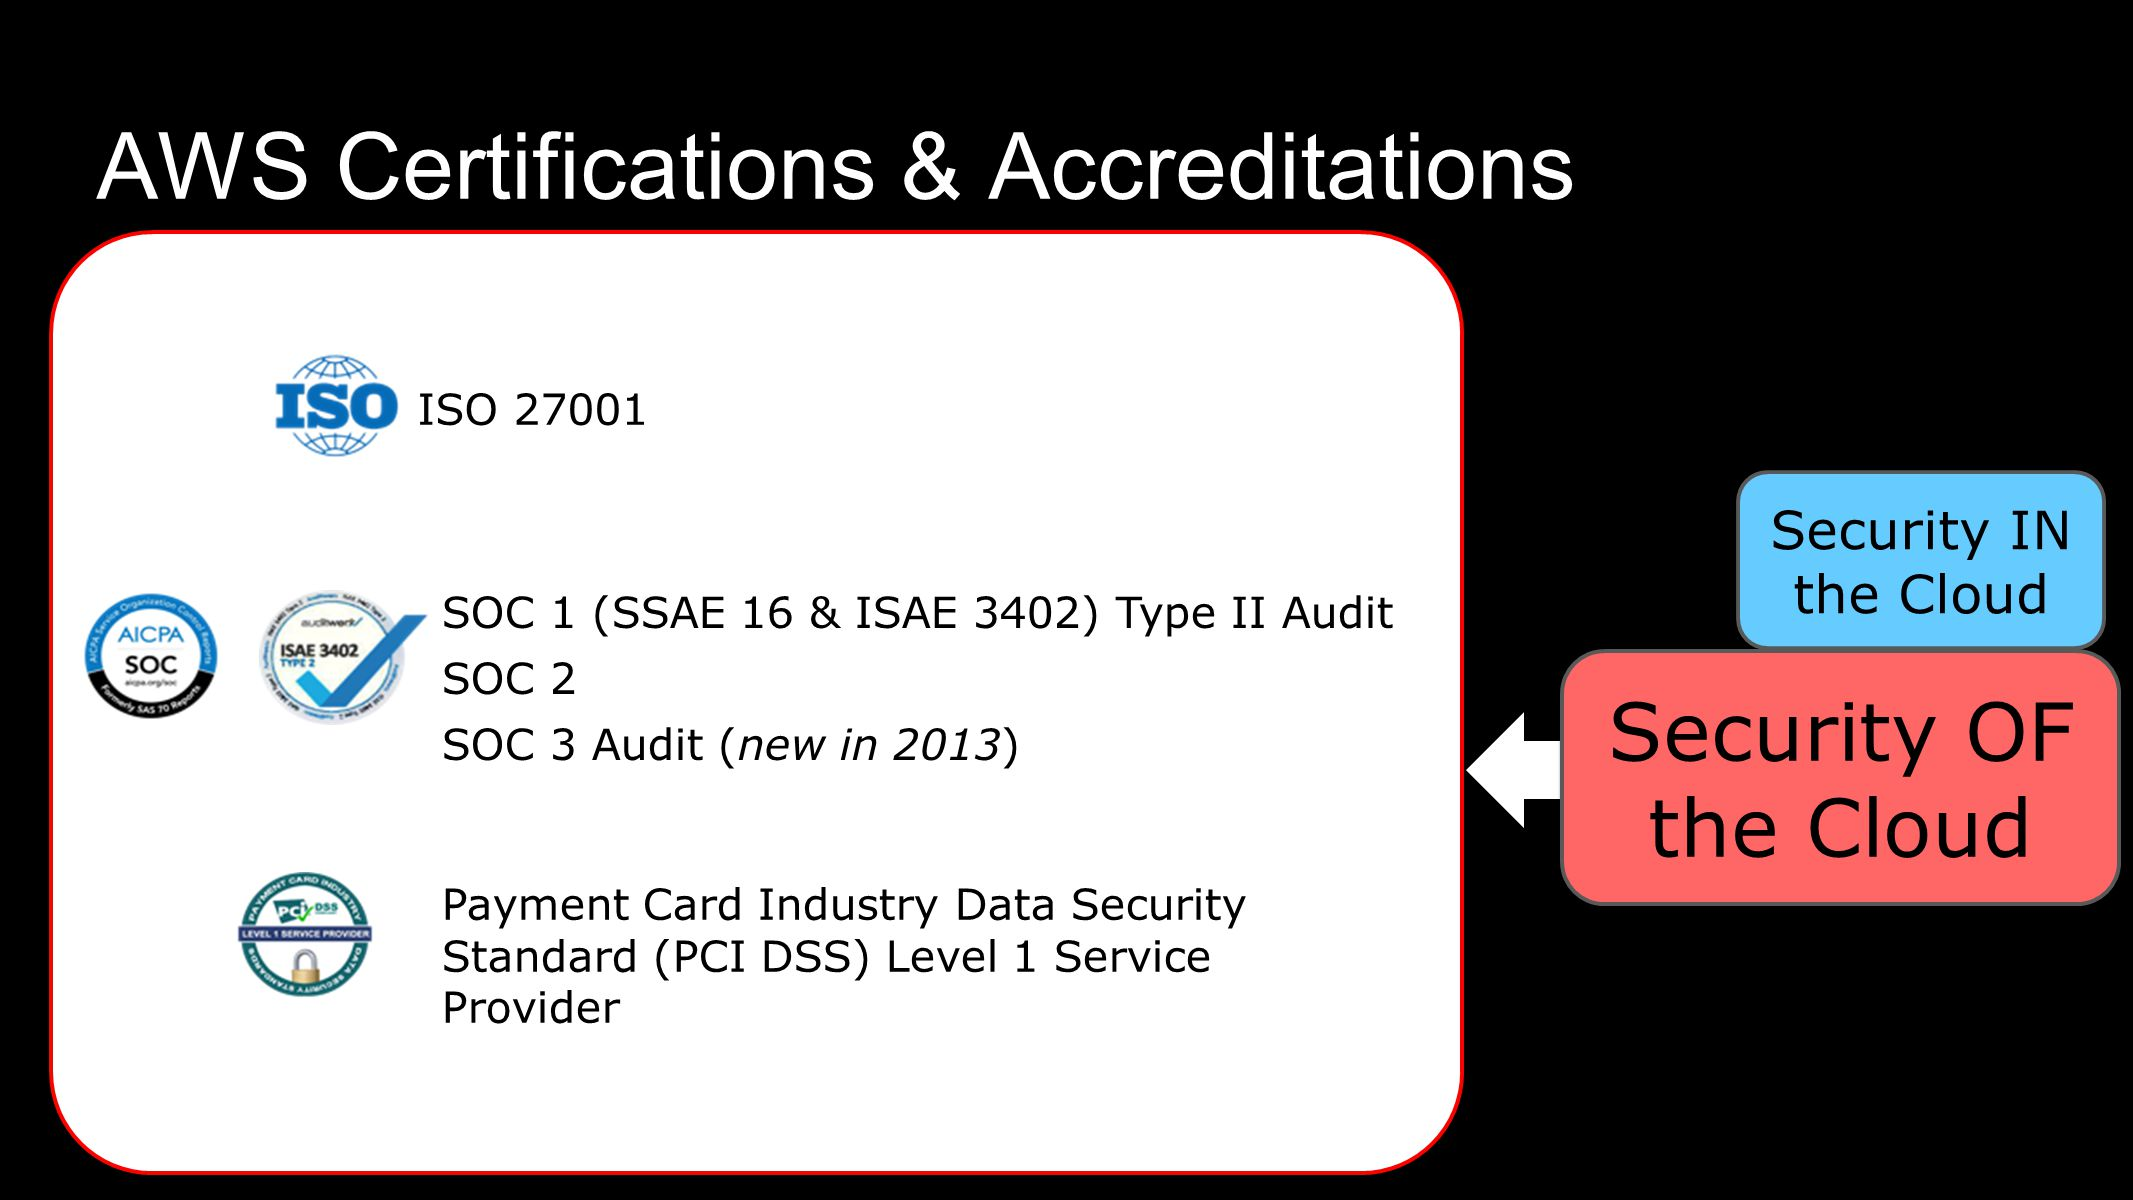 AWS Certifications & Accreditations